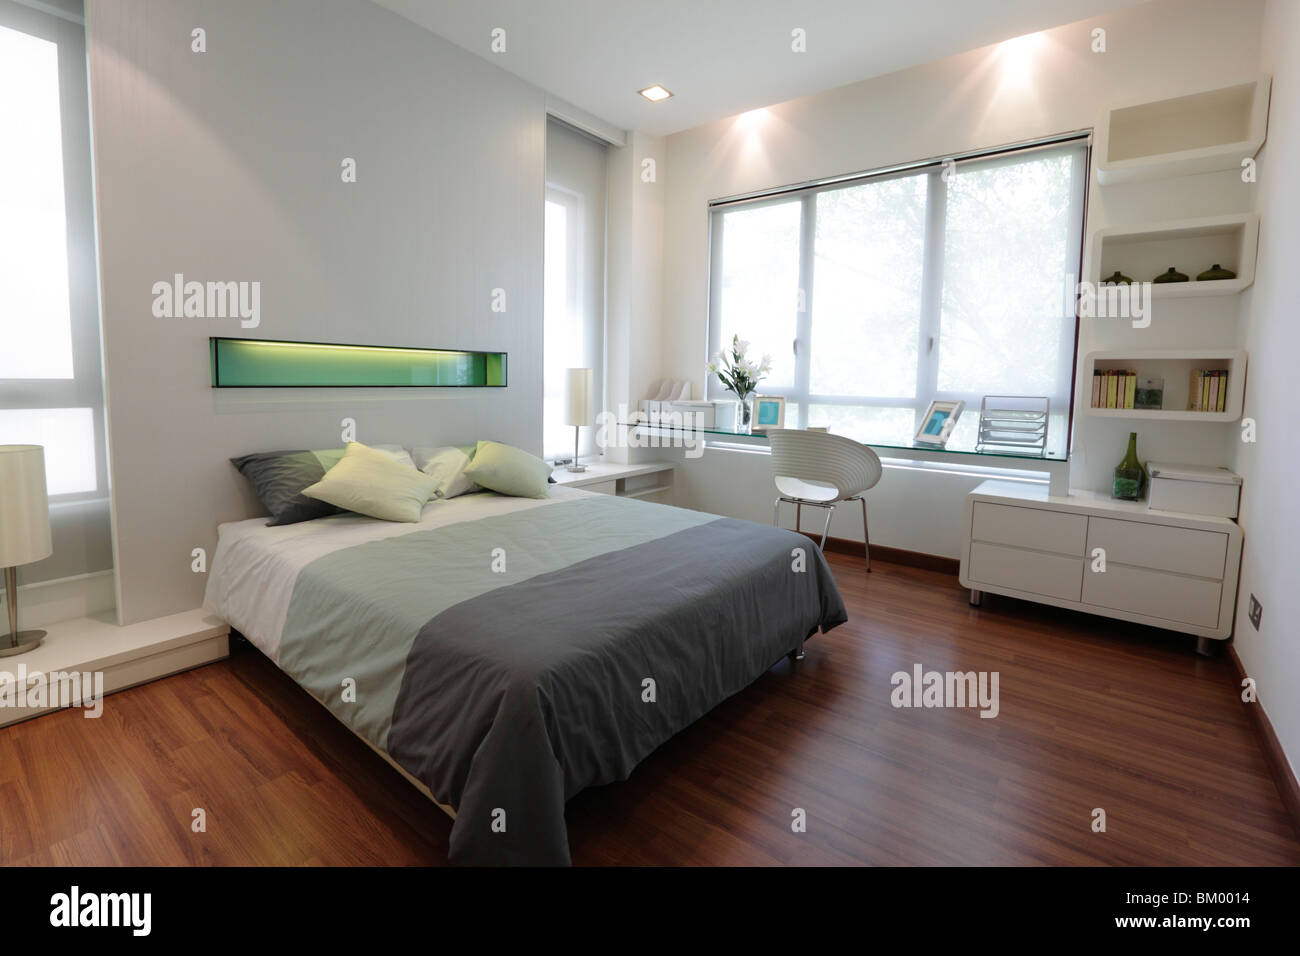 View of a modern bedroom - Stock Image